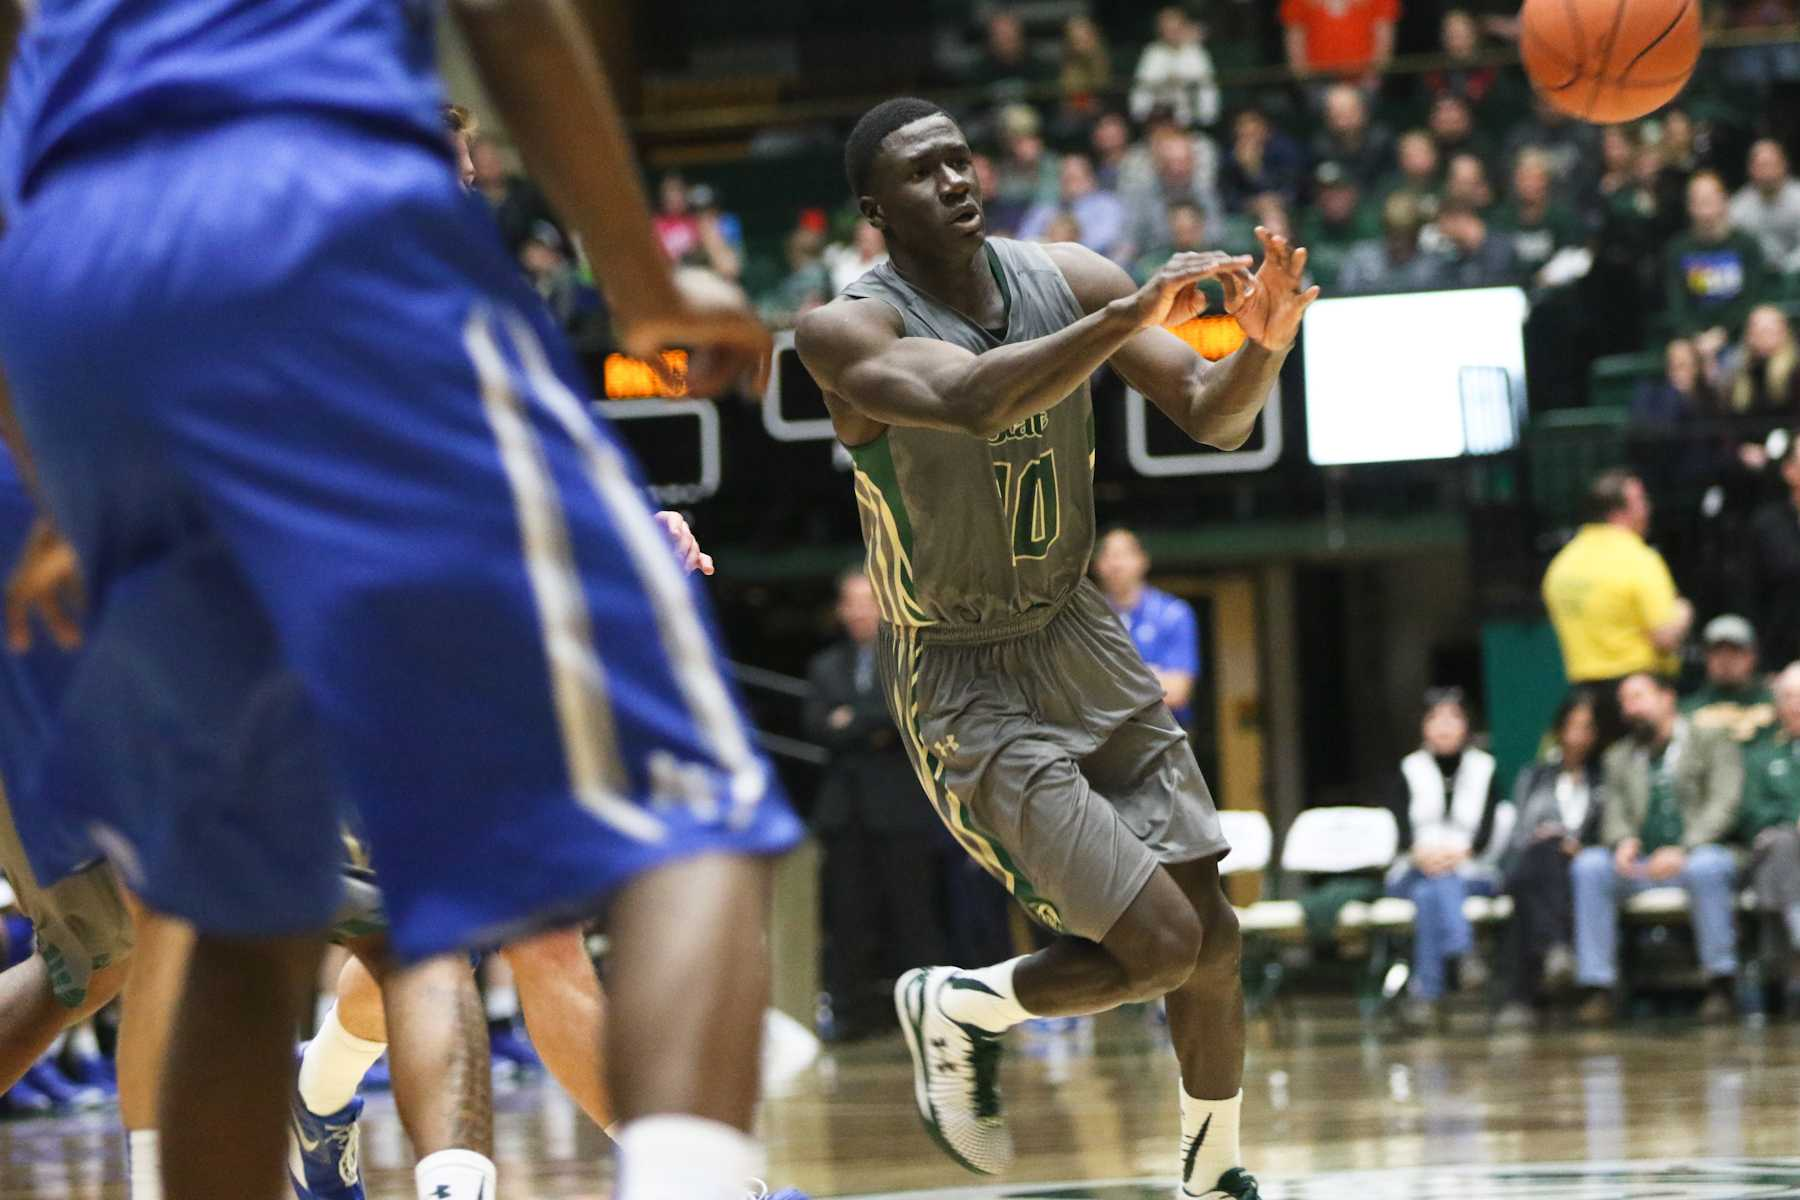 d343aad644ff Colorado State vs. Air Force men s and women s basketball preview ...